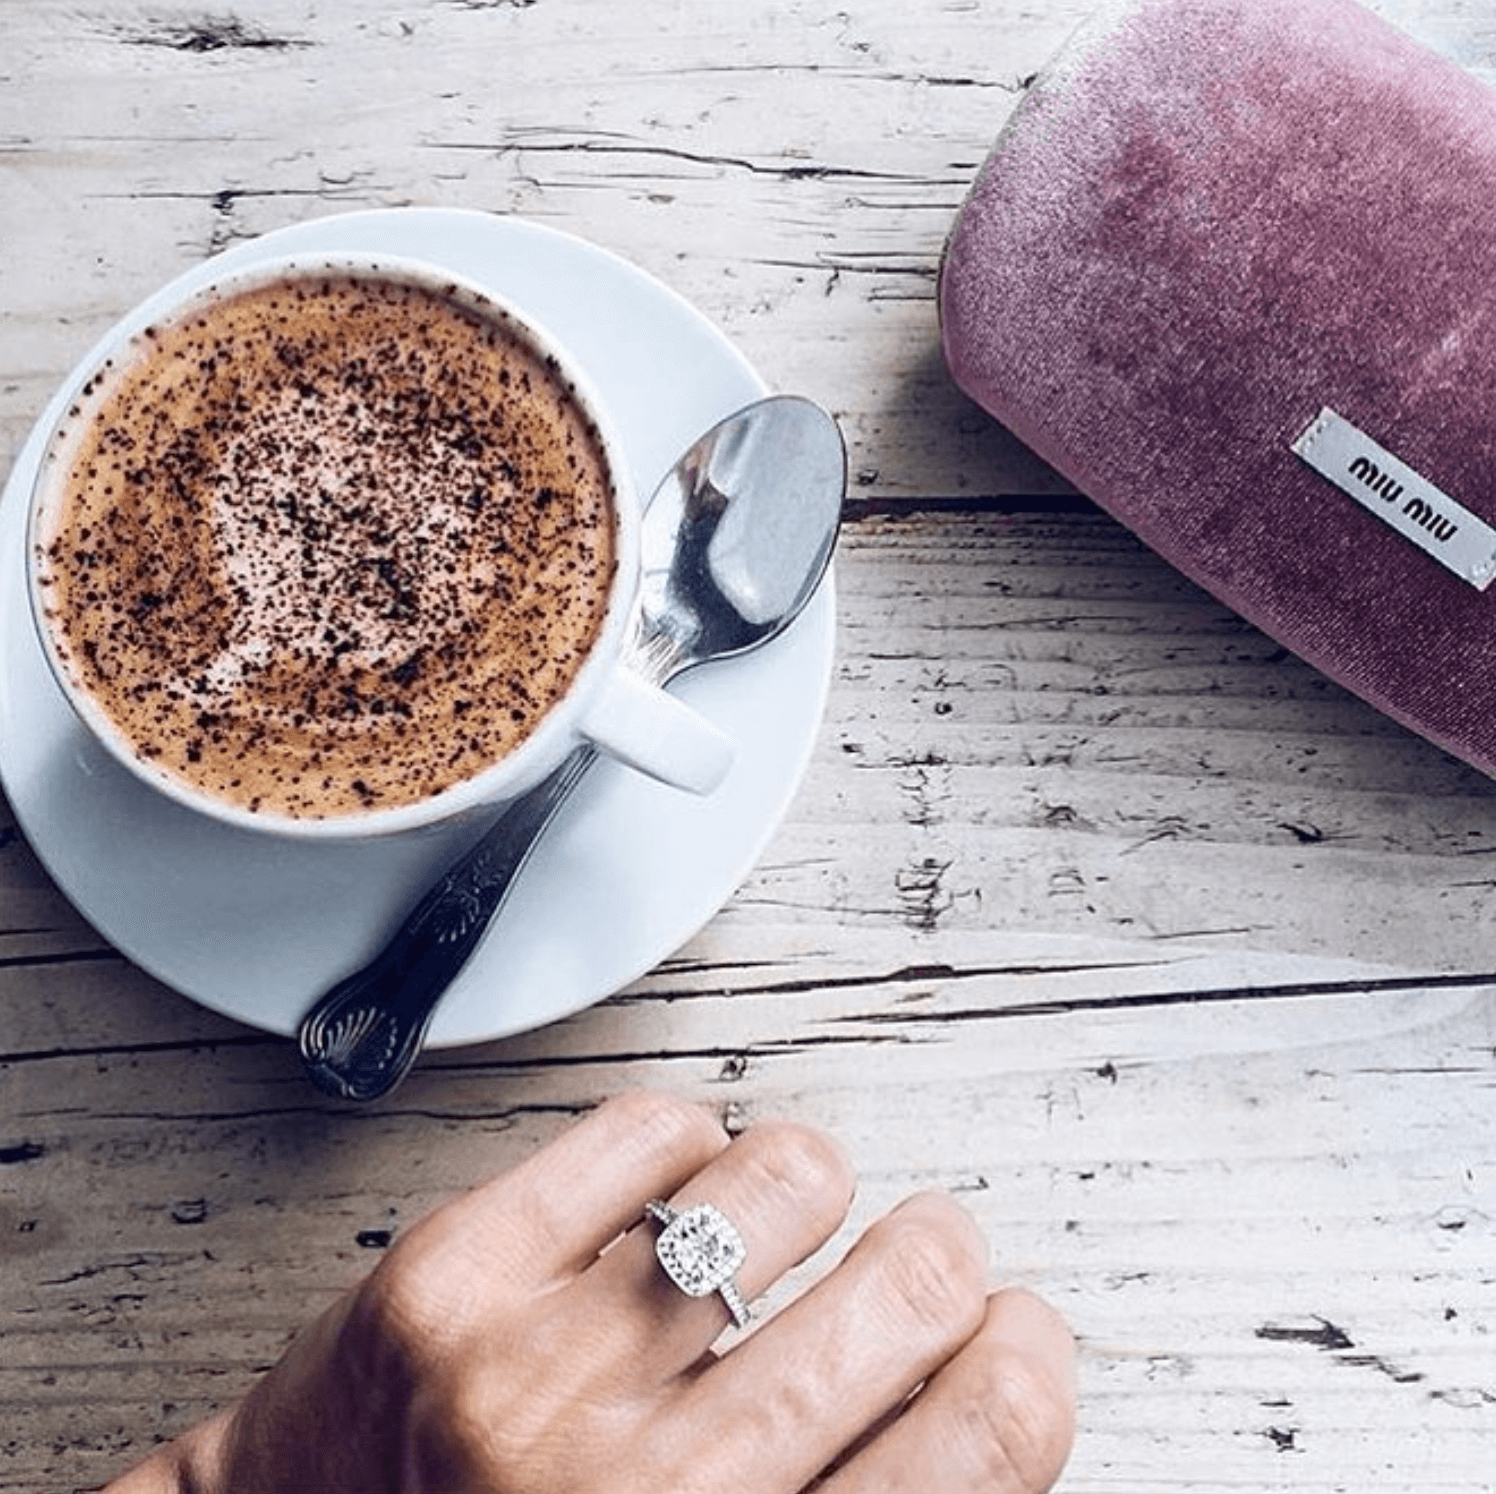 Art Deco inspired engagement ring photo with coffee